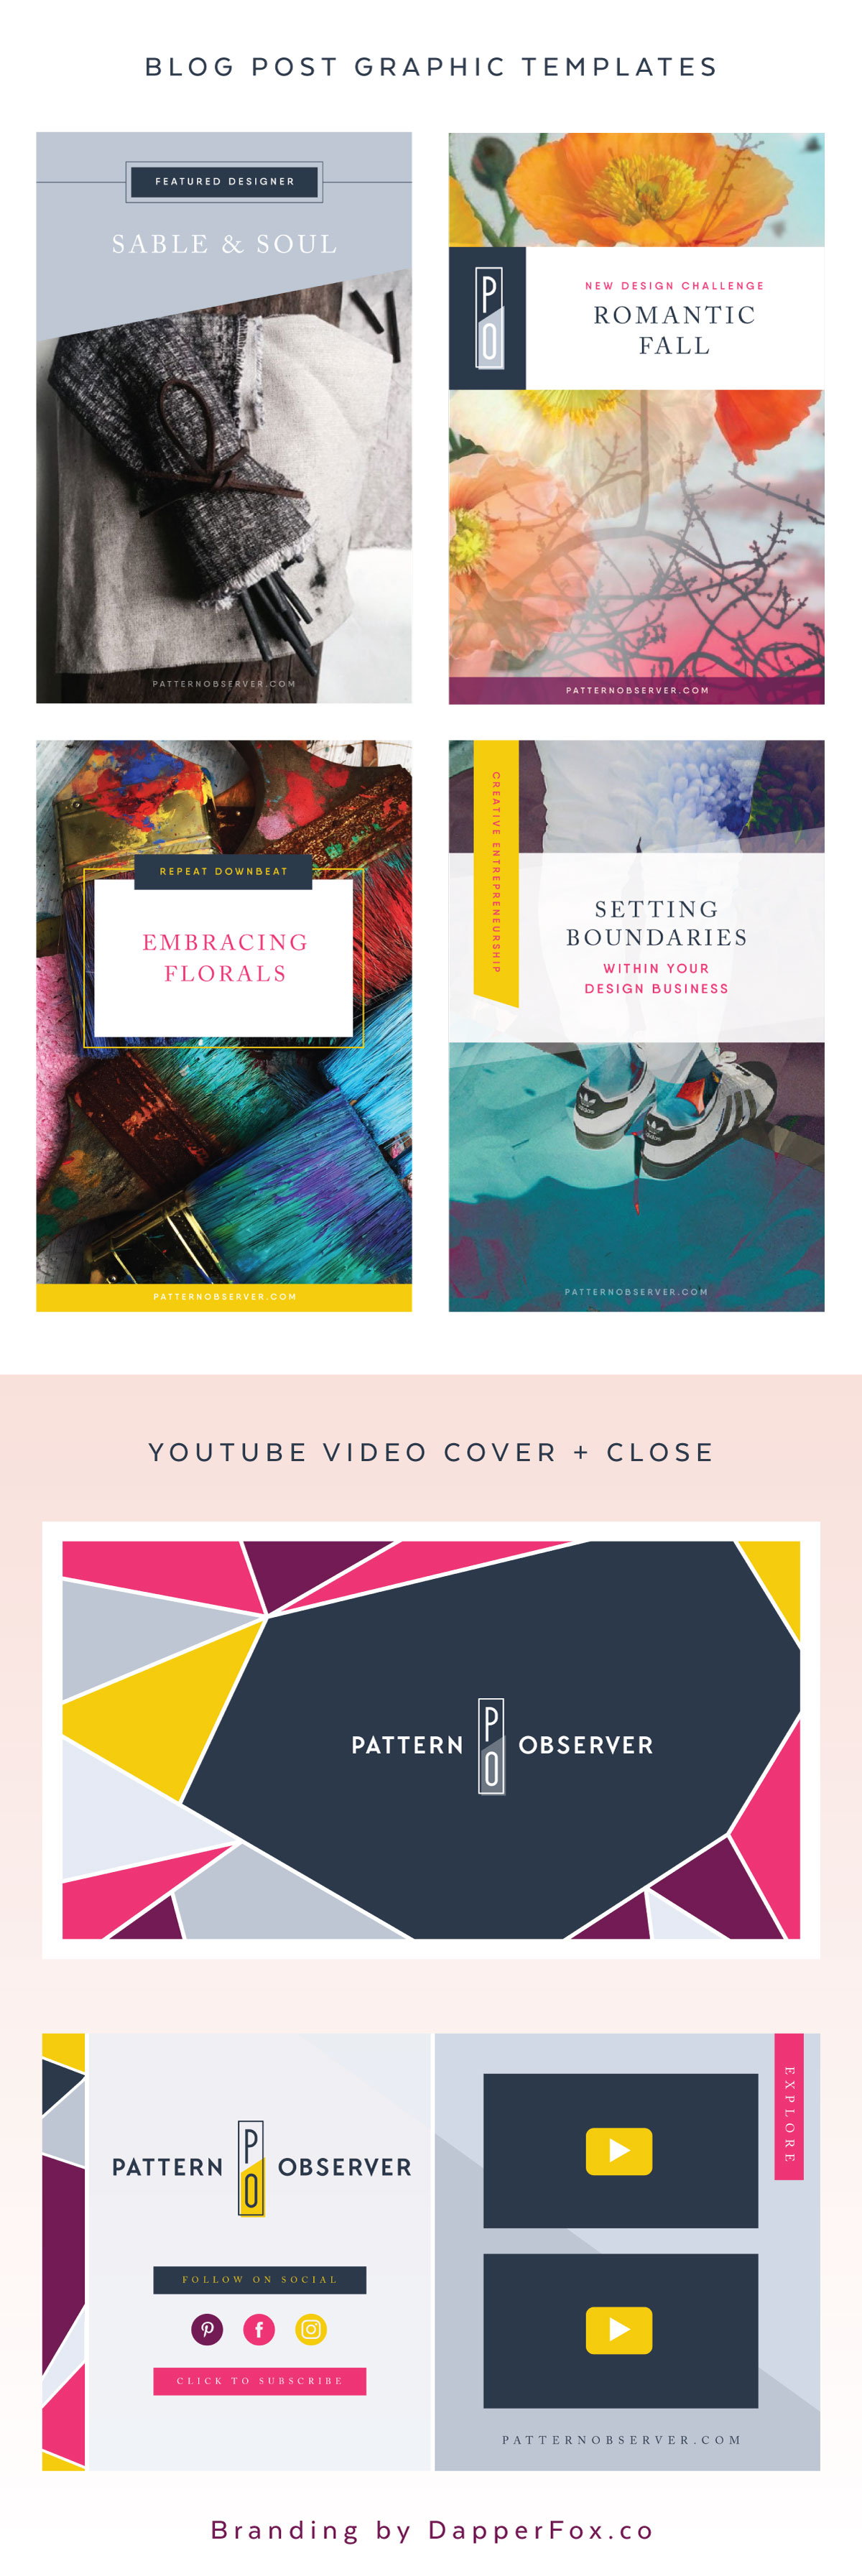 Brand Collateral Video templates and Blog Graphic Design by Dapper Fox